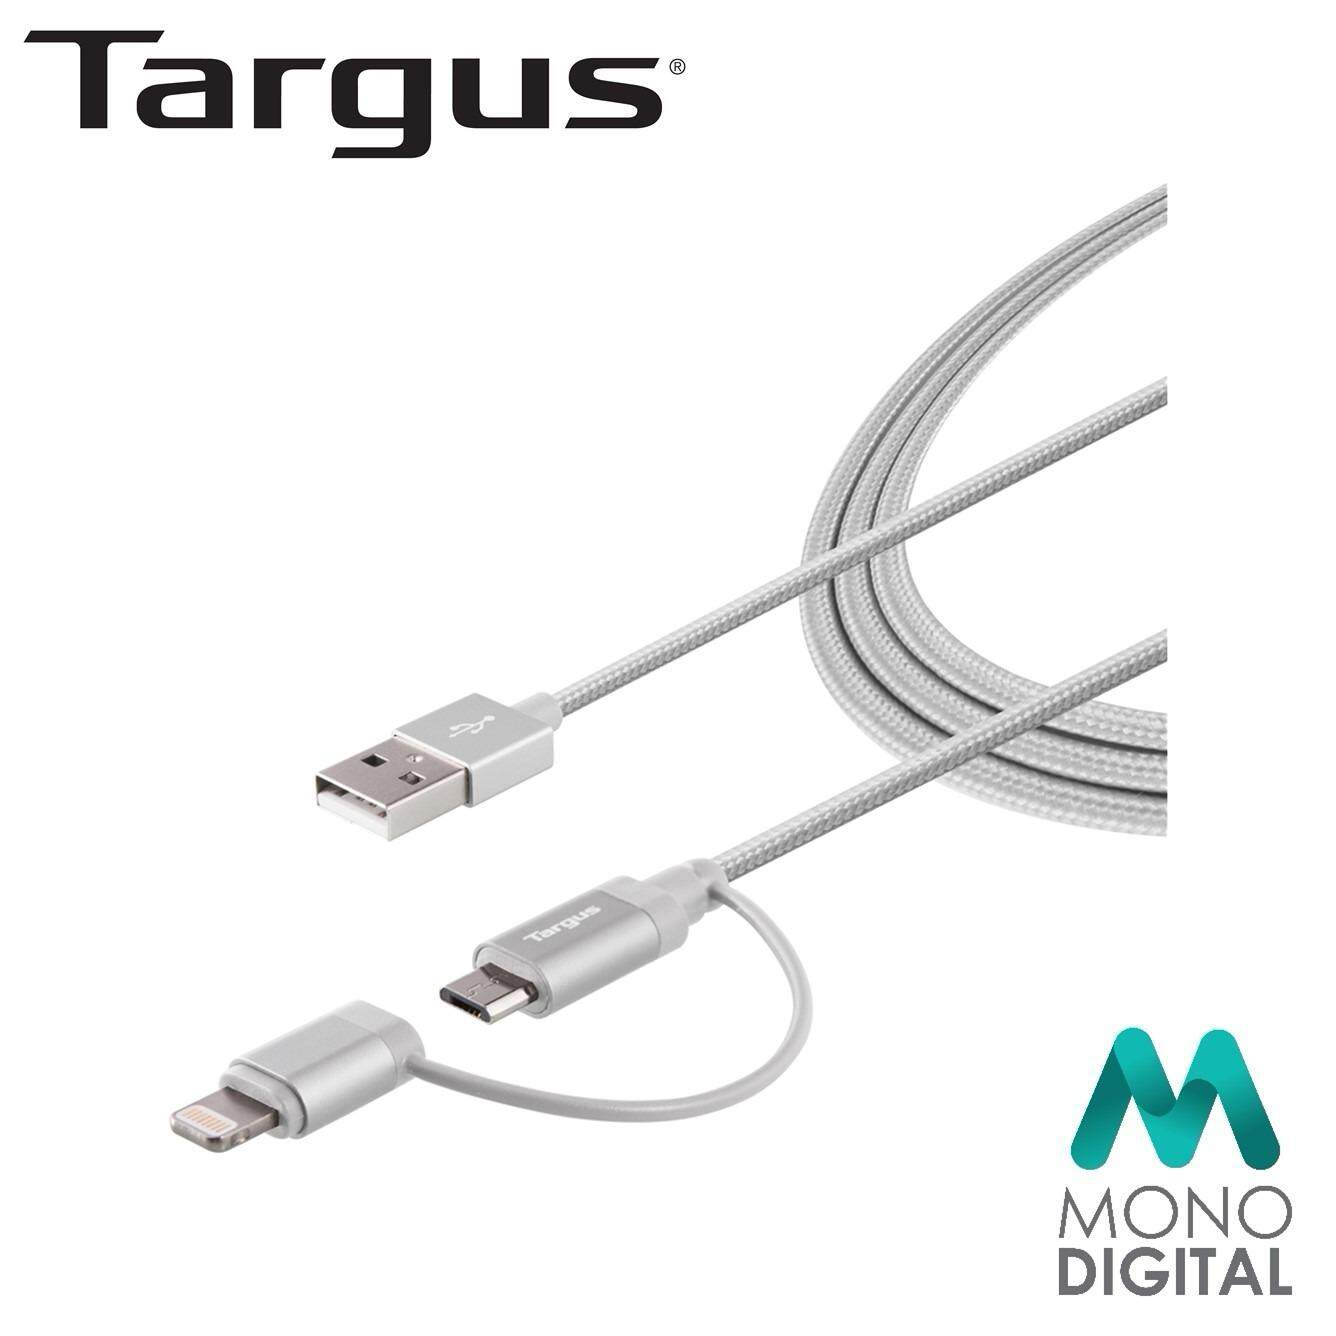 Features Ix Remax Rc 042t Strive 2 In 1 Charger Cable For Original Lesu Series Data 3 Lightning Usb Type C Micro 1m 066th Targus Aluminium 12meter Compatible